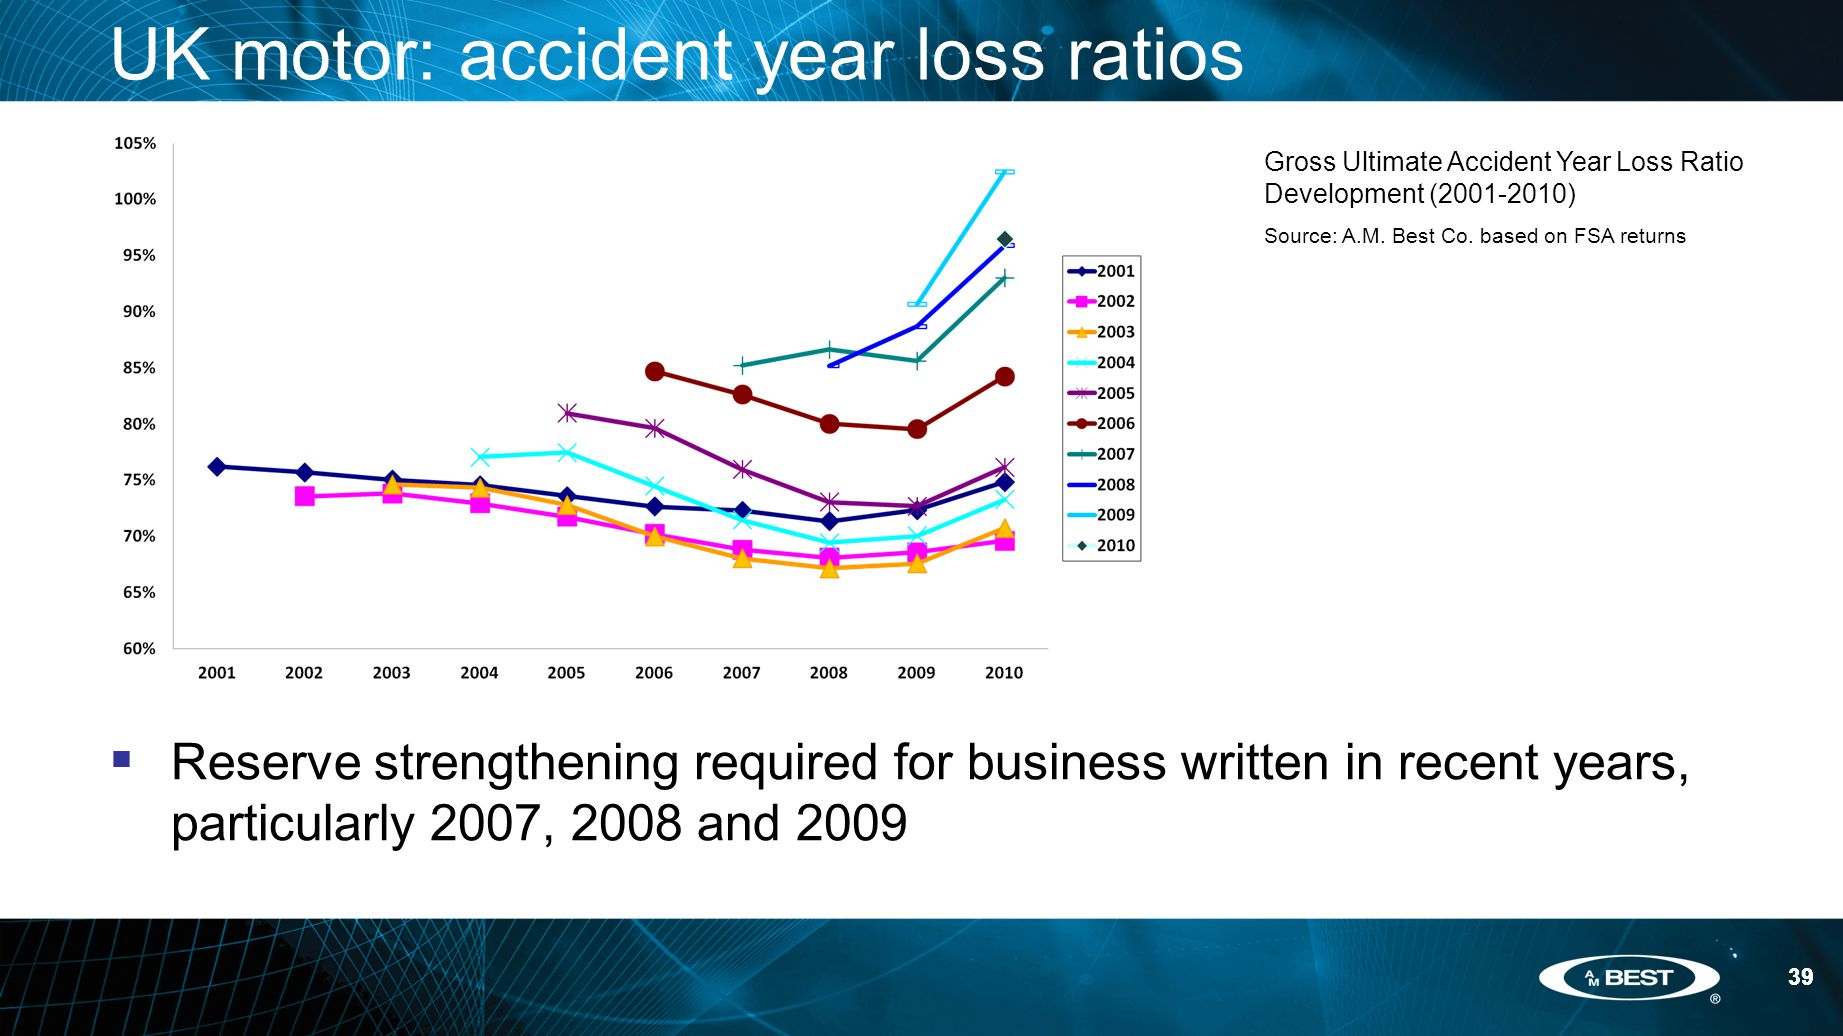 39 UK motor: accident year loss ratios  Reserve strengthening required for business written in recent years, particularly 2007, 2008 and 2009 39 Gross Ultimate Accident Year Loss Ratio Development (2001-2010) Source: A.M.